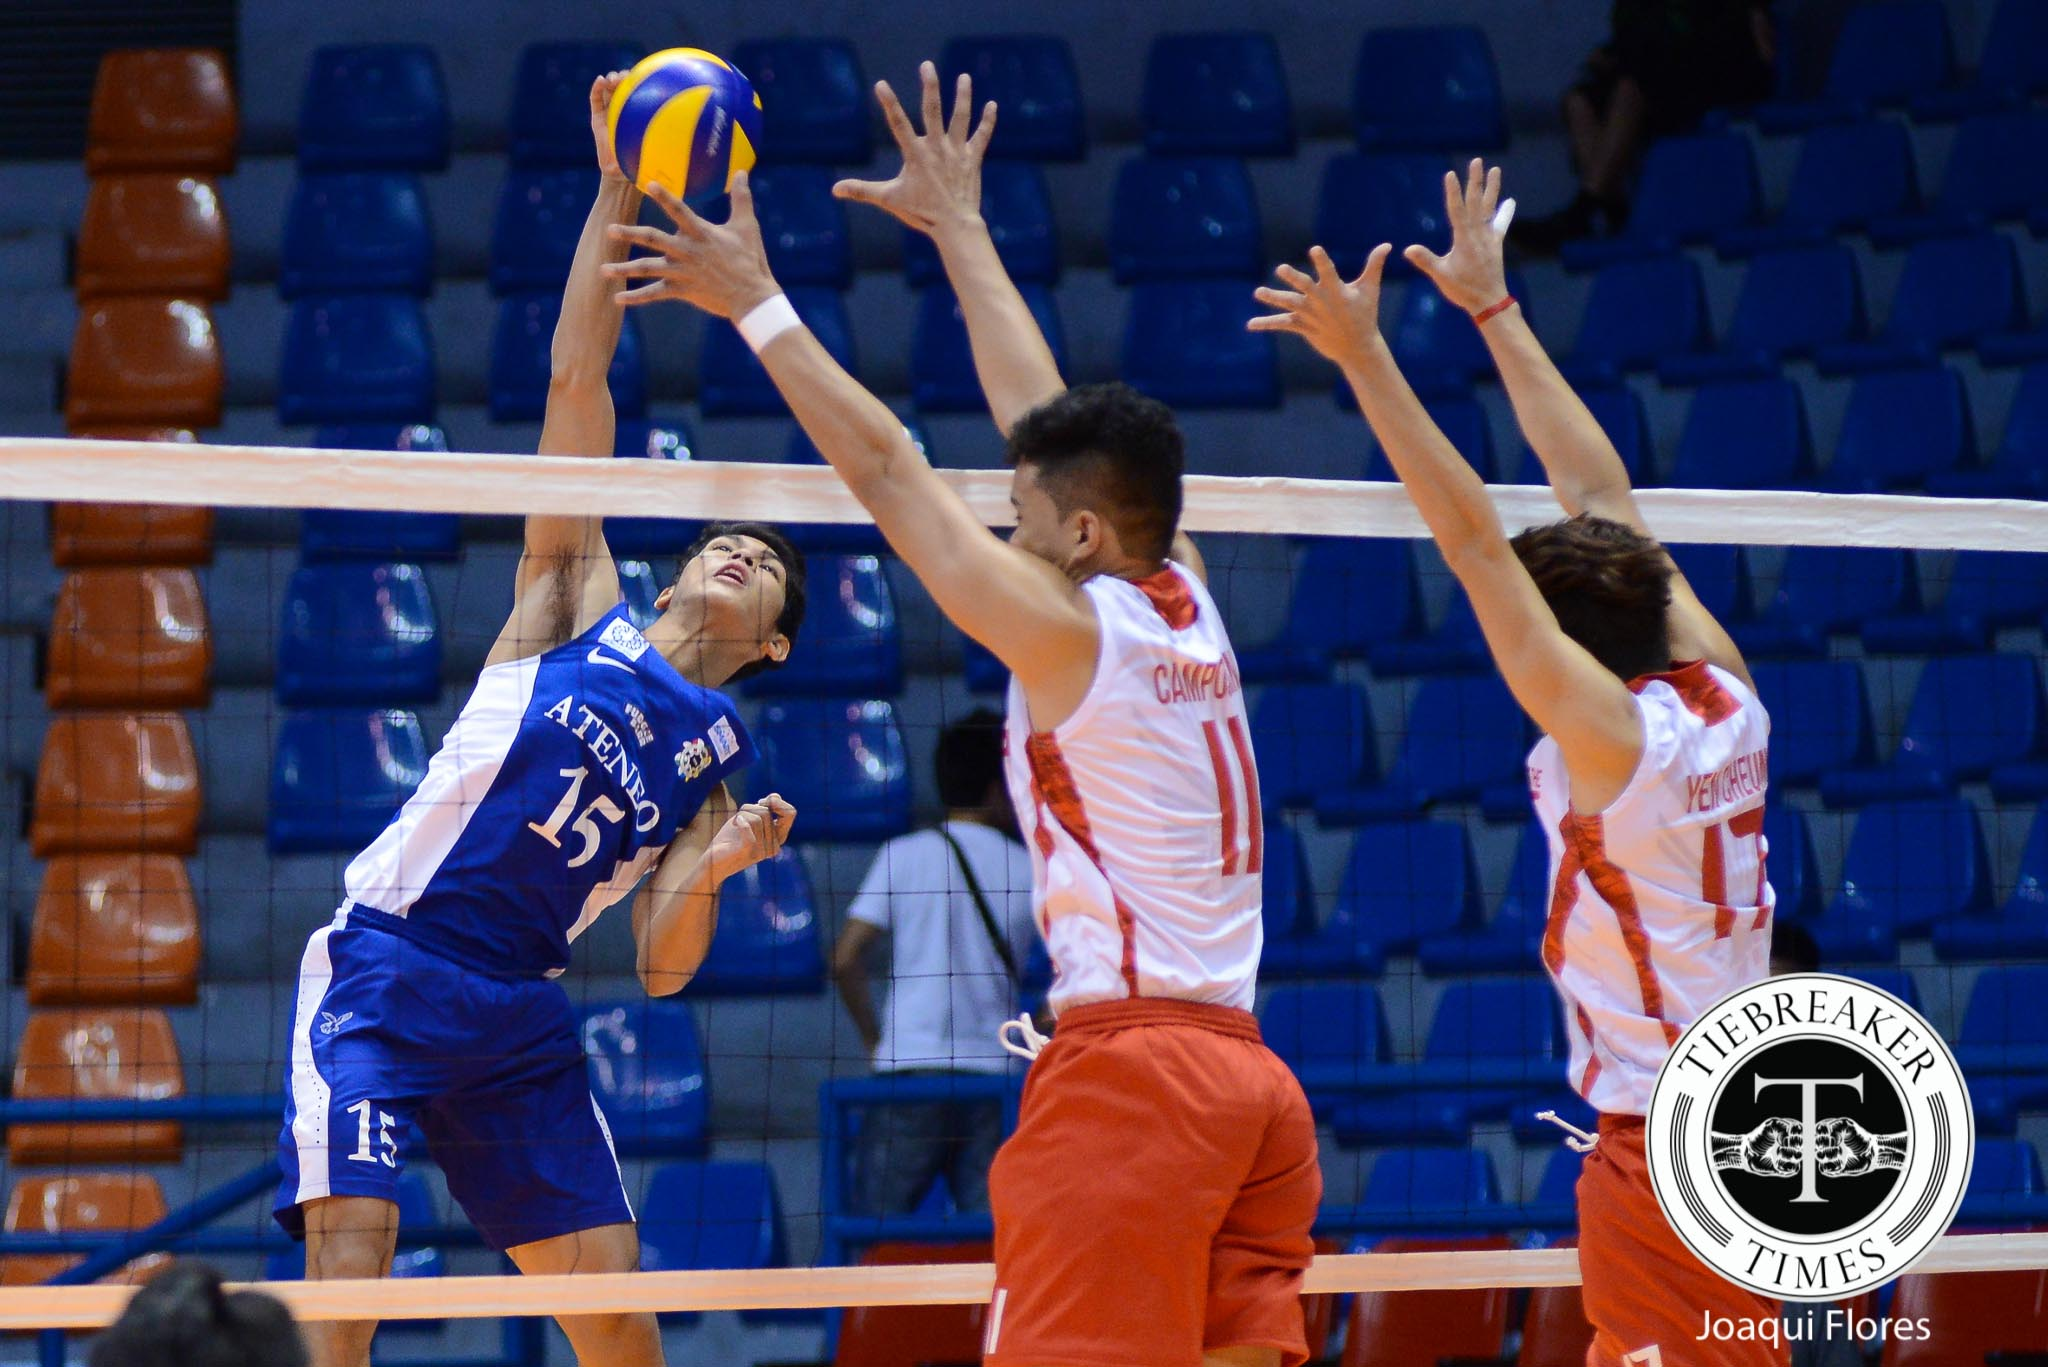 Tiebreaker Times Eagles rout struggling Warriors for fifth win ADMU News UAAP UE Volleyball  UE Men's Volleyball Team UAAP Season 78 Men's Volleyball Ruvince Abrot Ruel Pascual Ron Medalla Rex Intal Oliver Almadro Noel Alba Marck Espejo Edward Camposano Ateneo Men's Volleyball Team